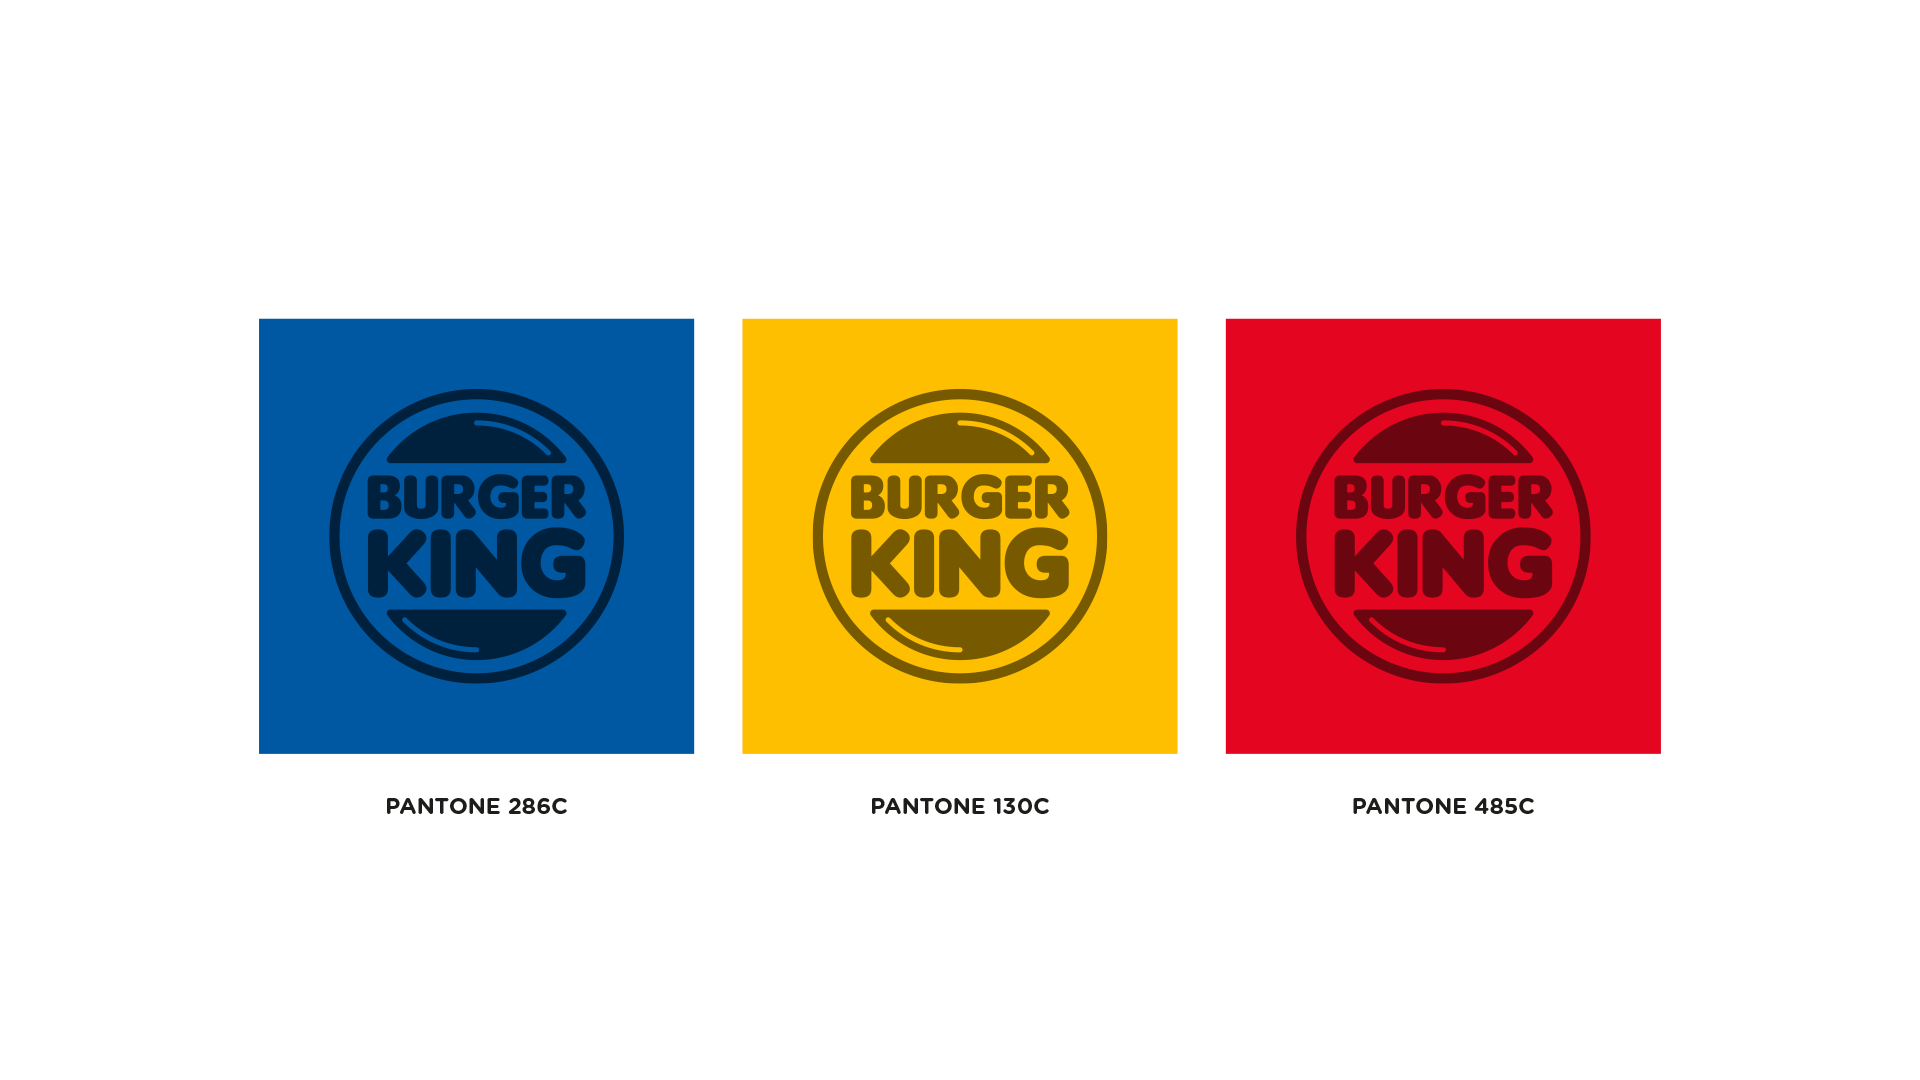 BURGER KING - Brand Restyling on Behance